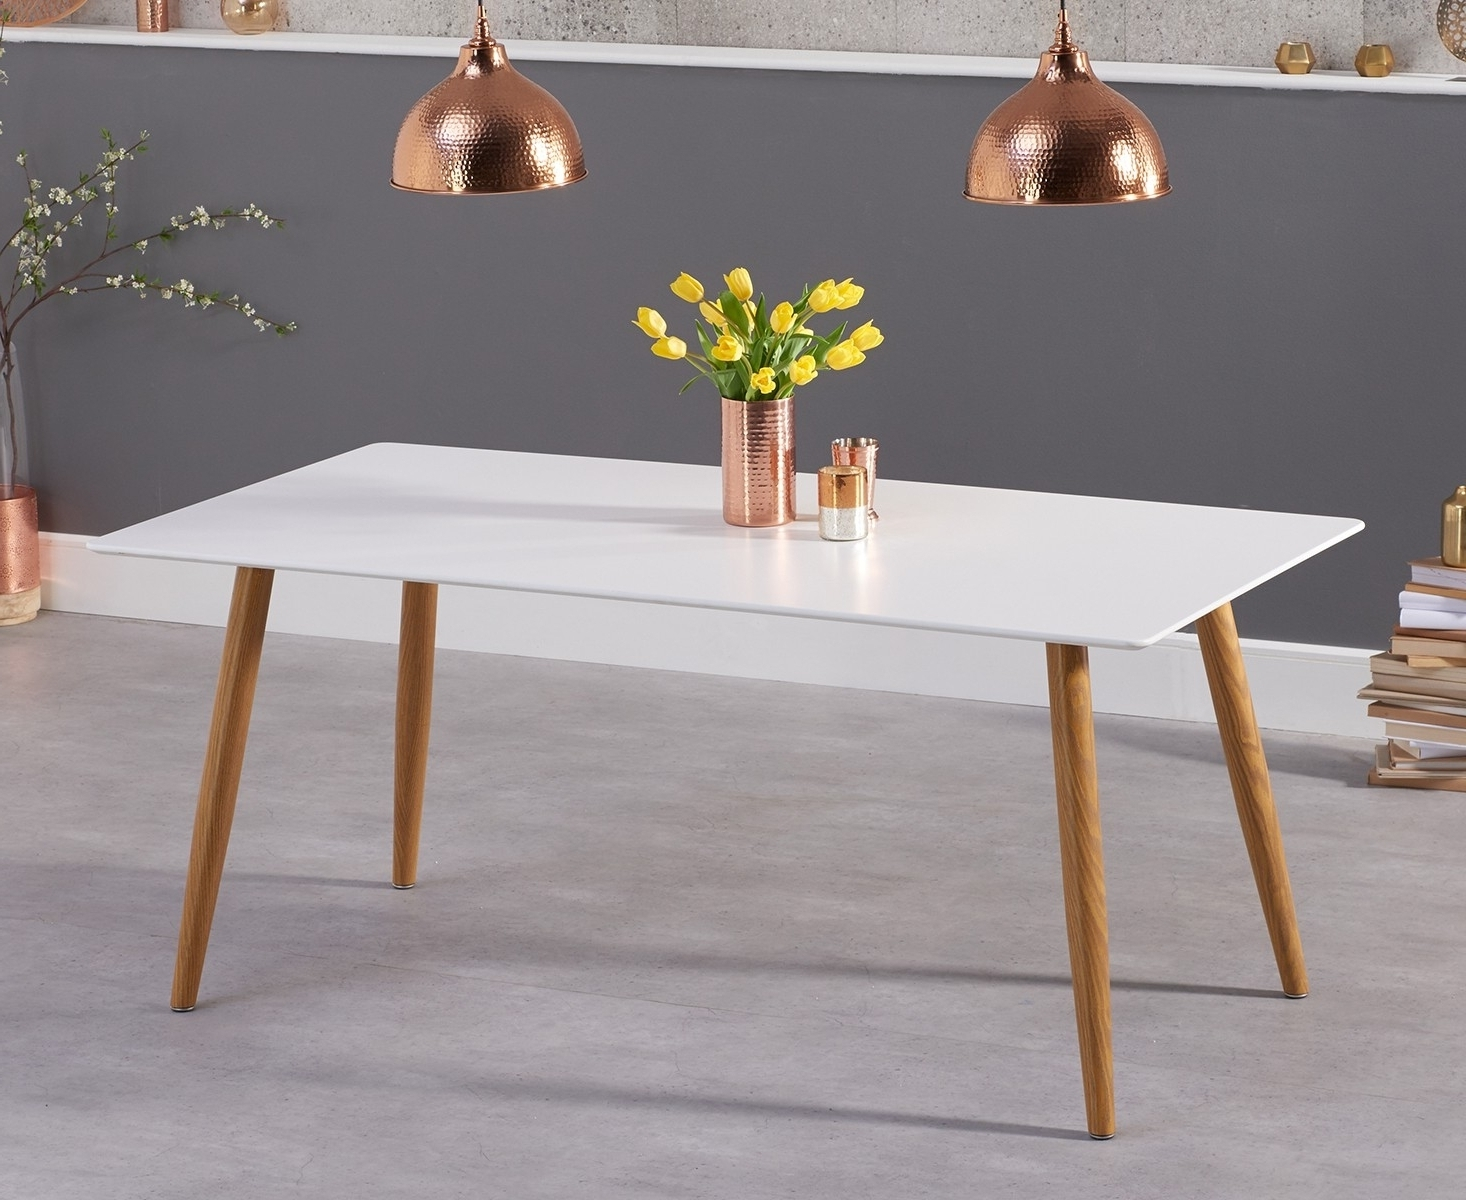 Favorite Buy Wessex Matt White 180Cm Dining Table The Furn Shop With 180Cm Dining Tables (View 10 of 25)